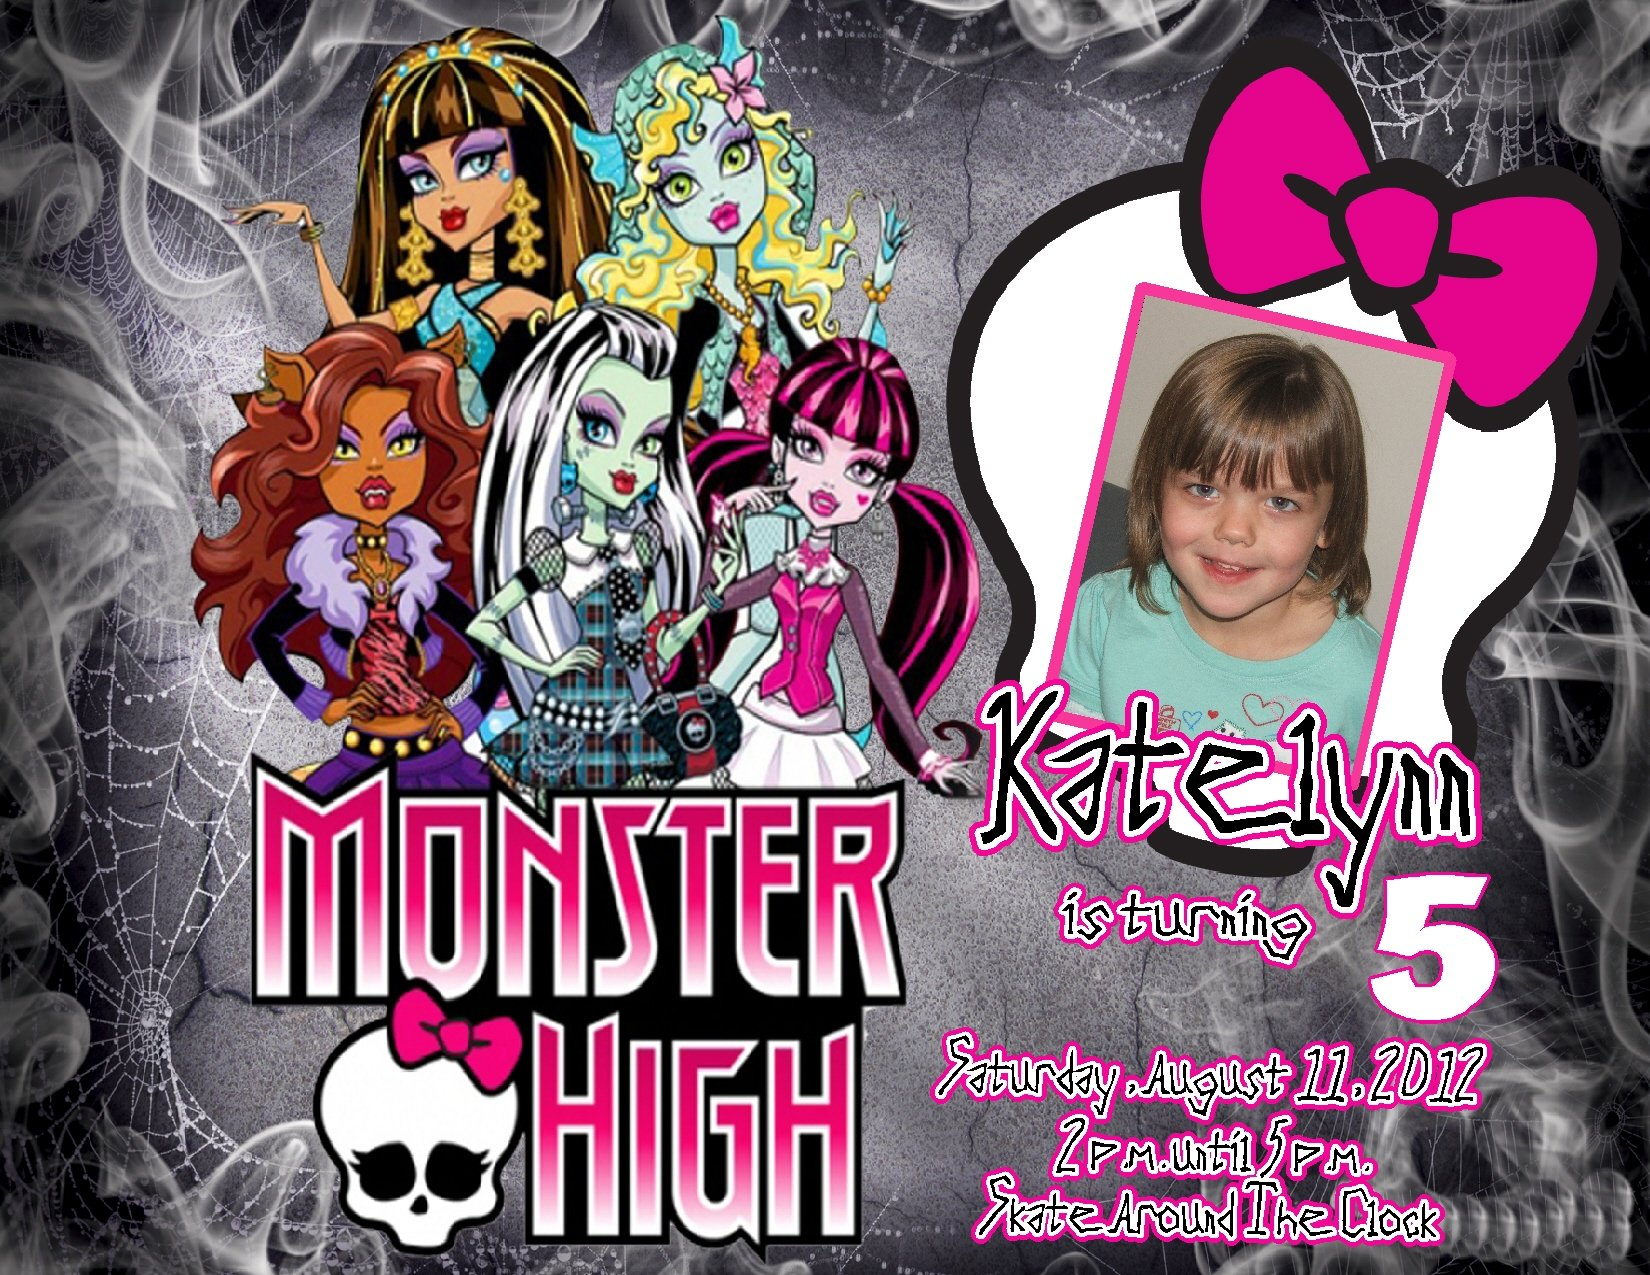 Free Download Awesome Monster High Wallpaper 1650x1275 For Your